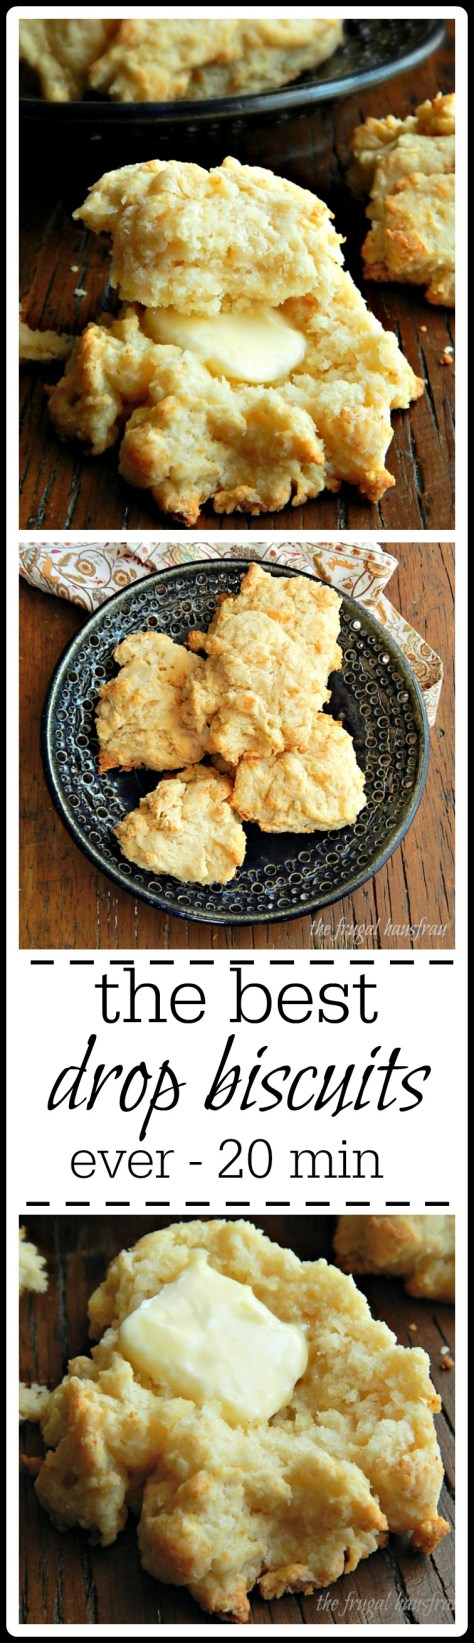 Drop Biscuits so good you'll be blown away, but even better 20 min to make & no buttermilk needed!